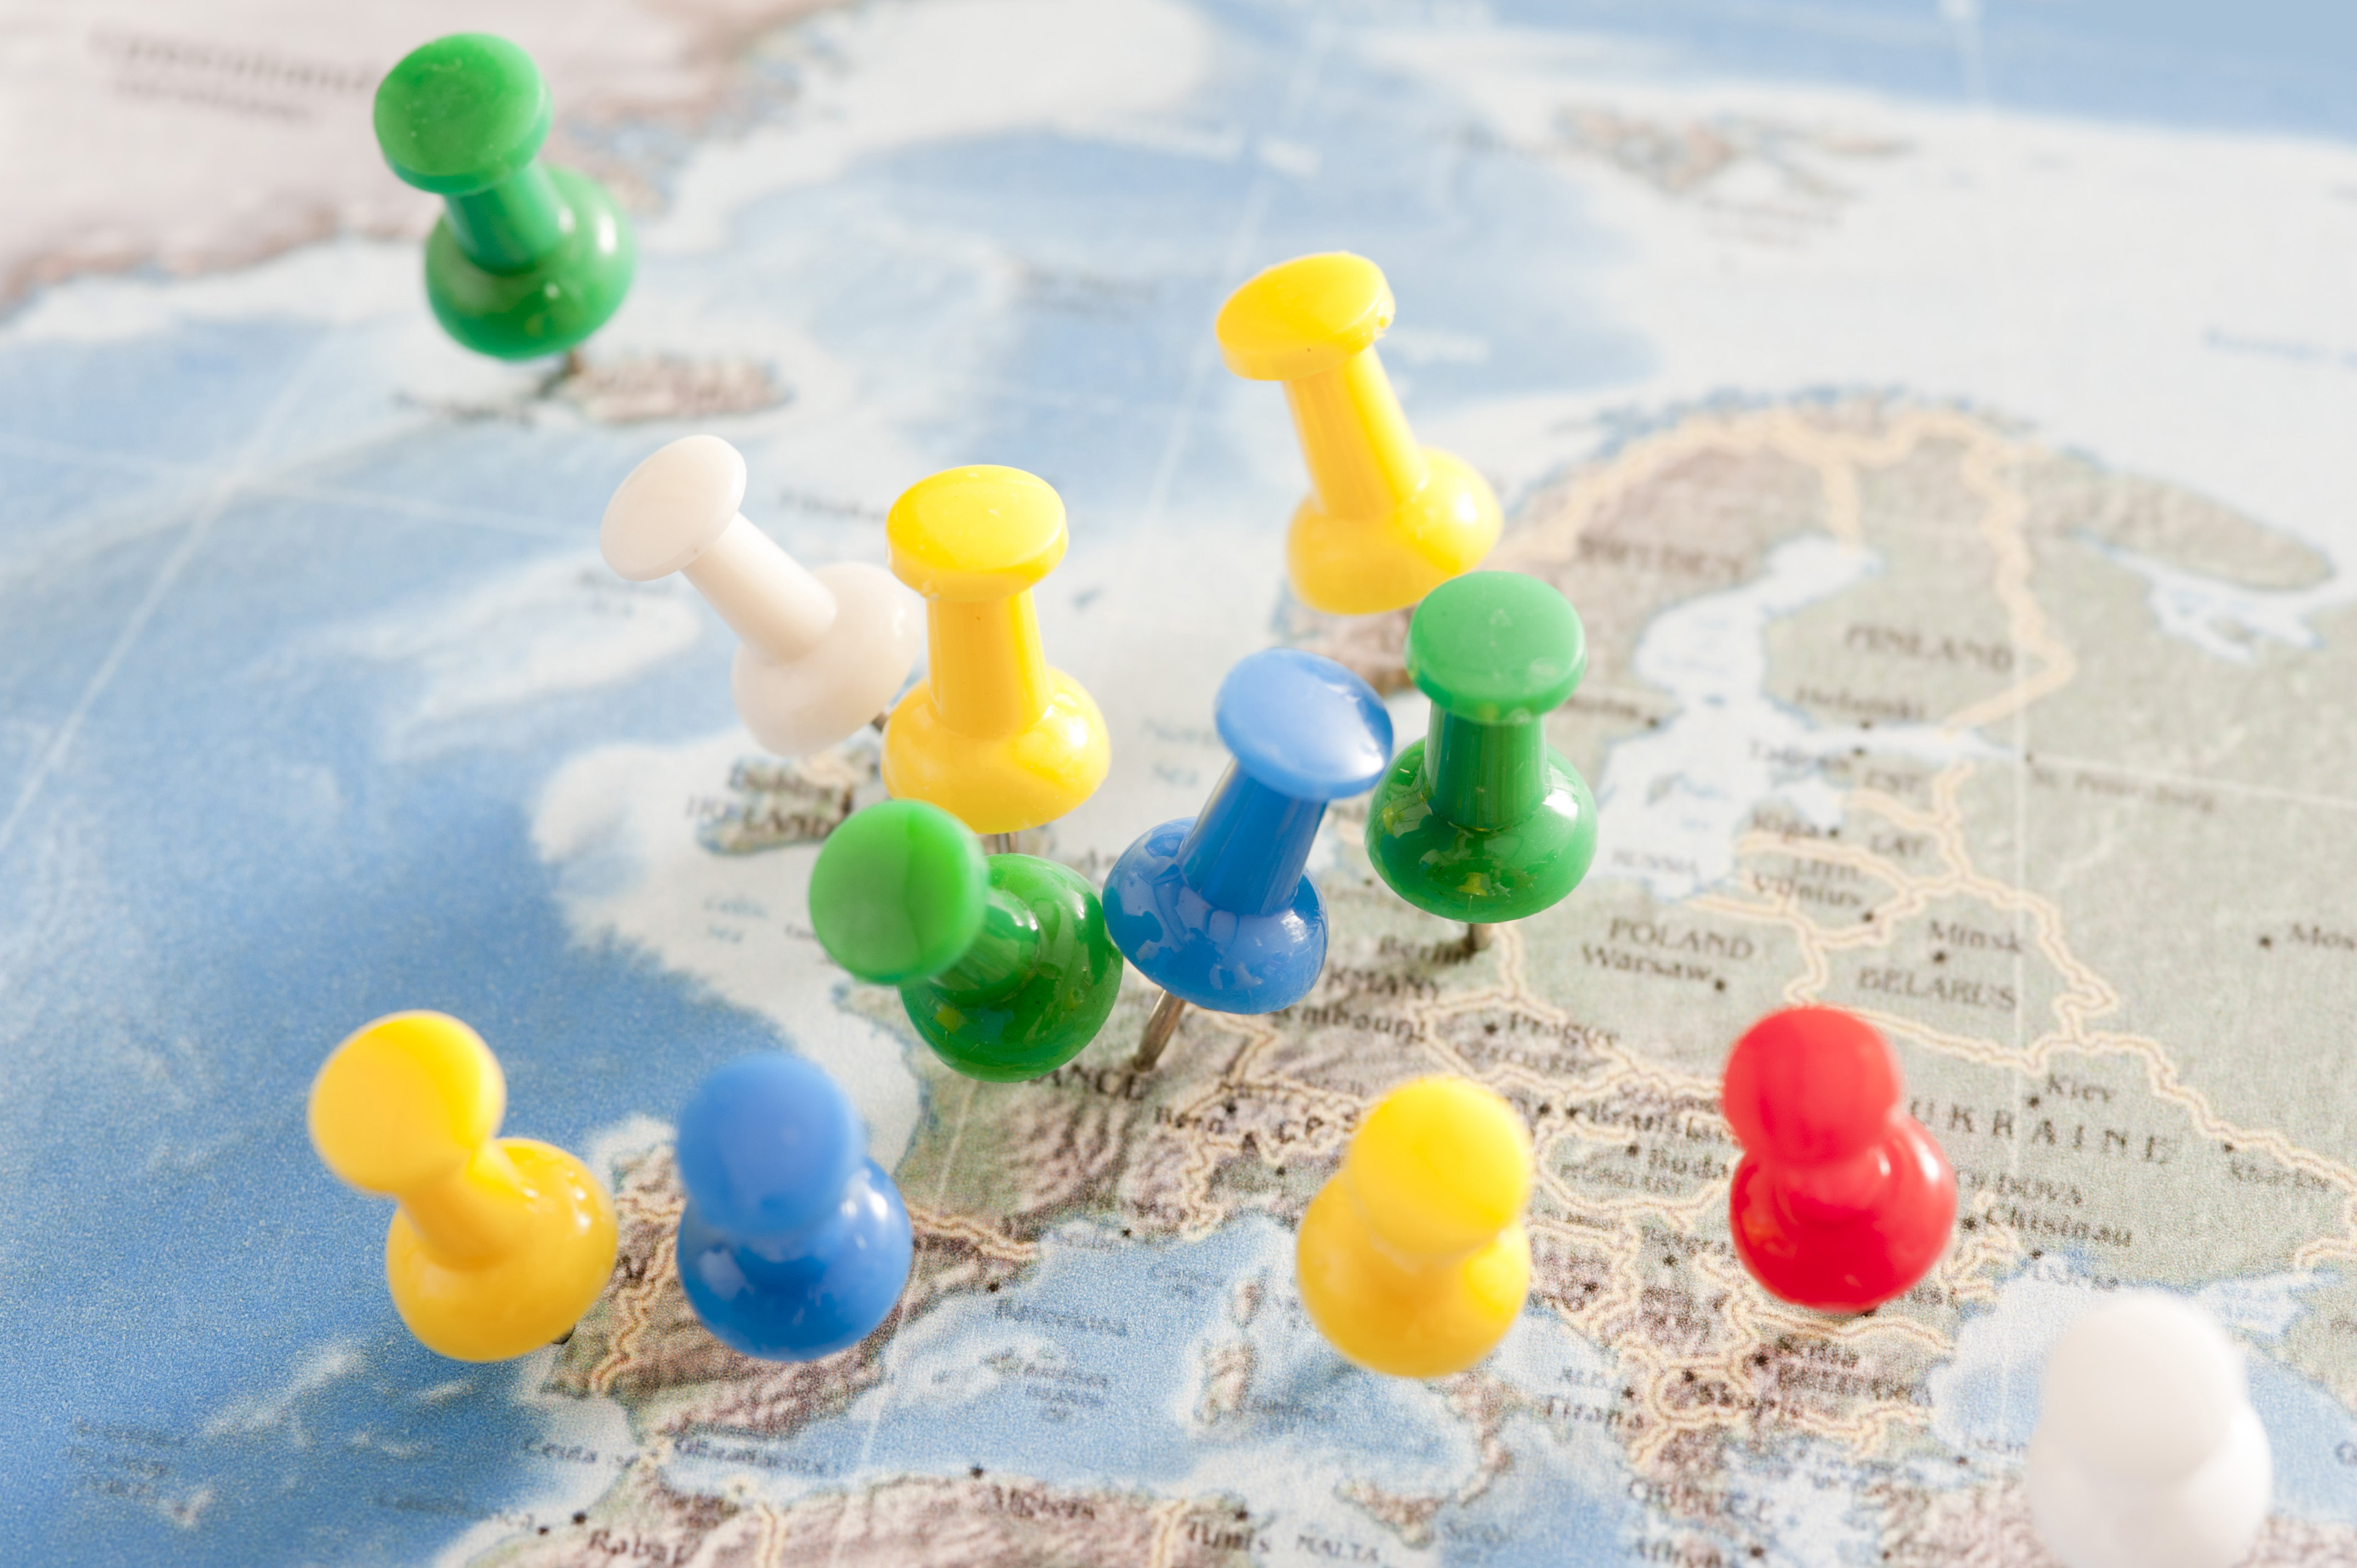 Close Up of Multiple Colorful Pins Inserted into Map of Europe in International Travel or Business Planning Concept